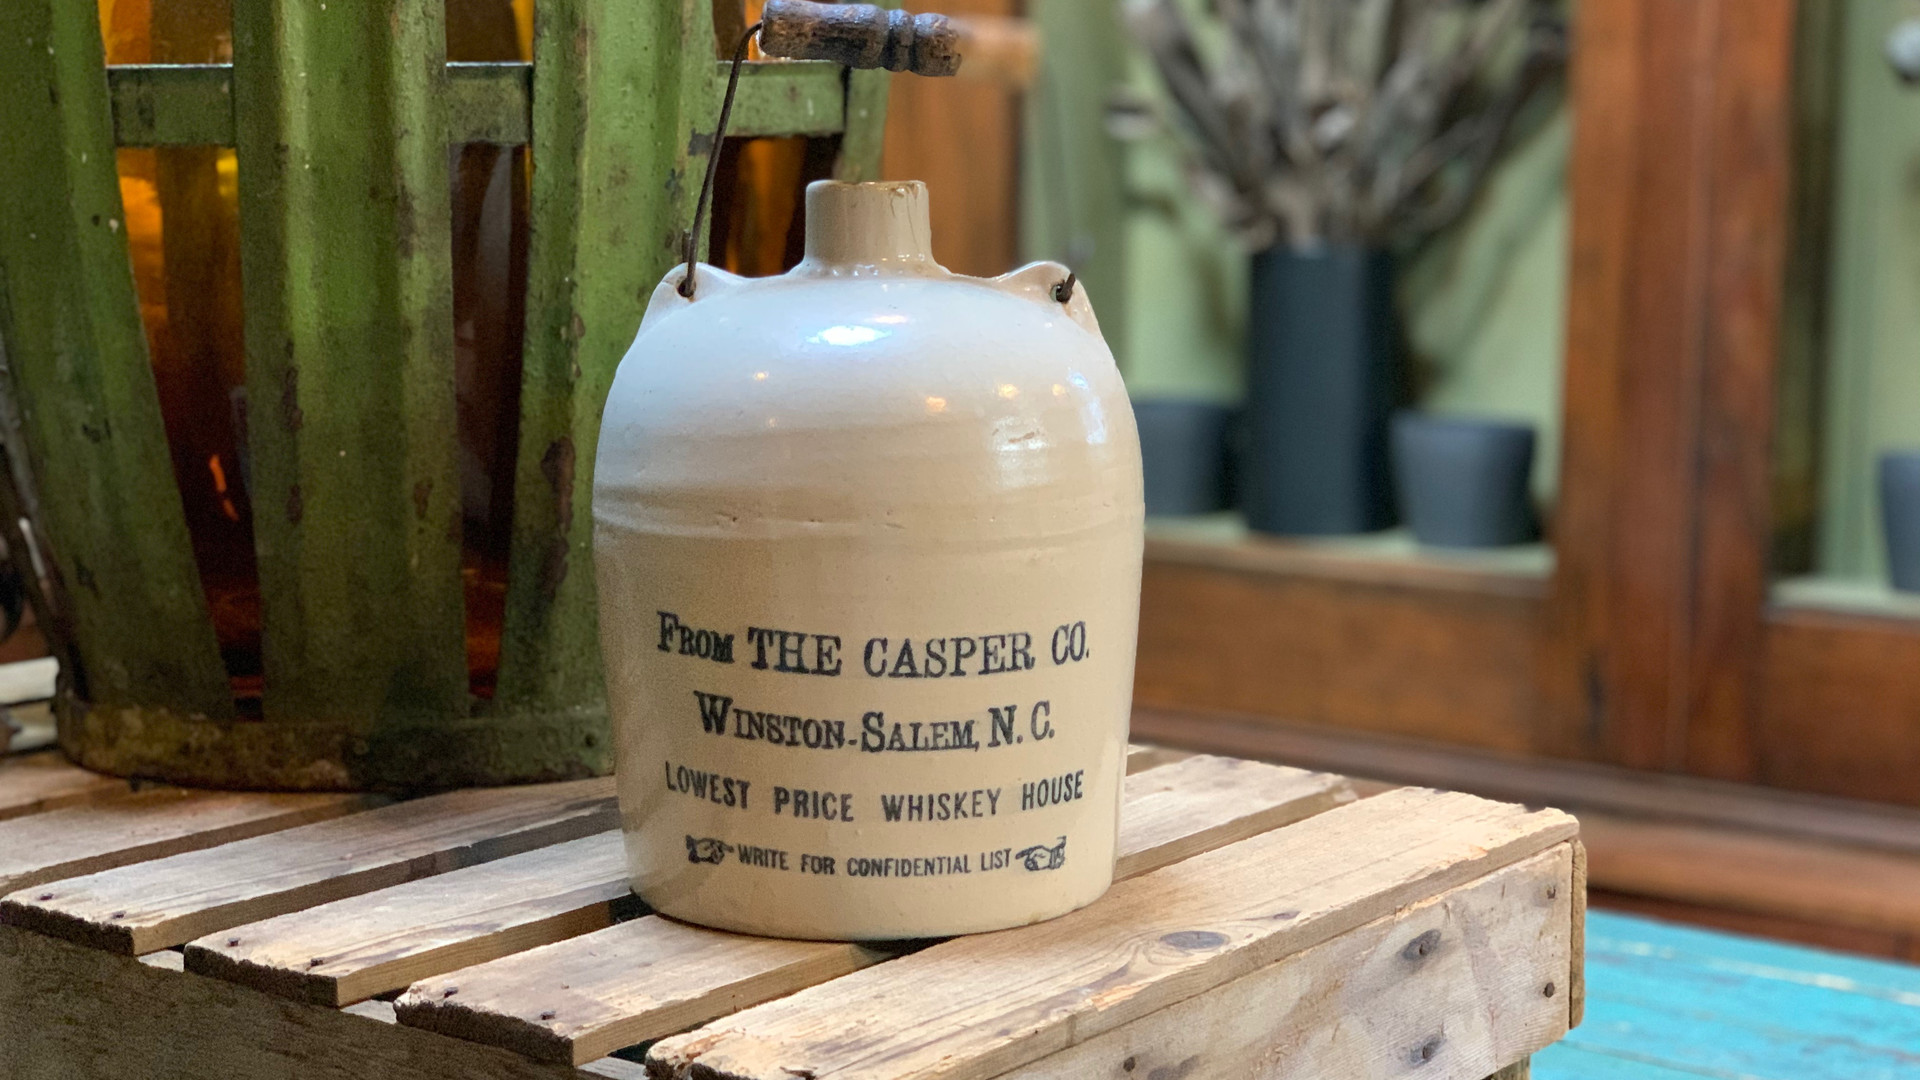 antique whiskey jug from winston salem nc sits on a wood pallet